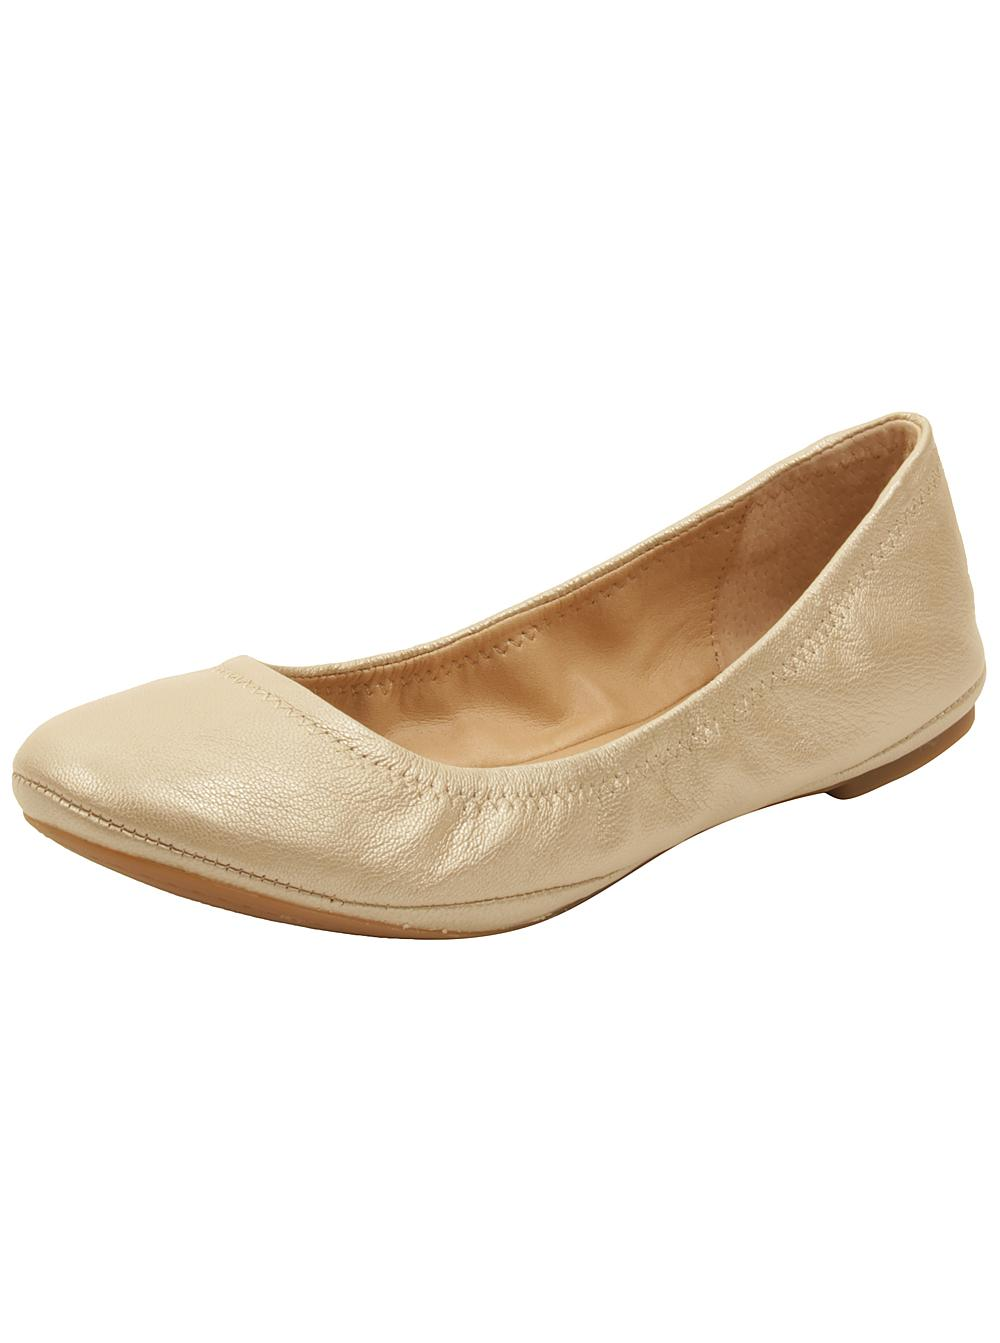 Lucky Brand Womens EMMIE Leather Closed Toe Slide Flats